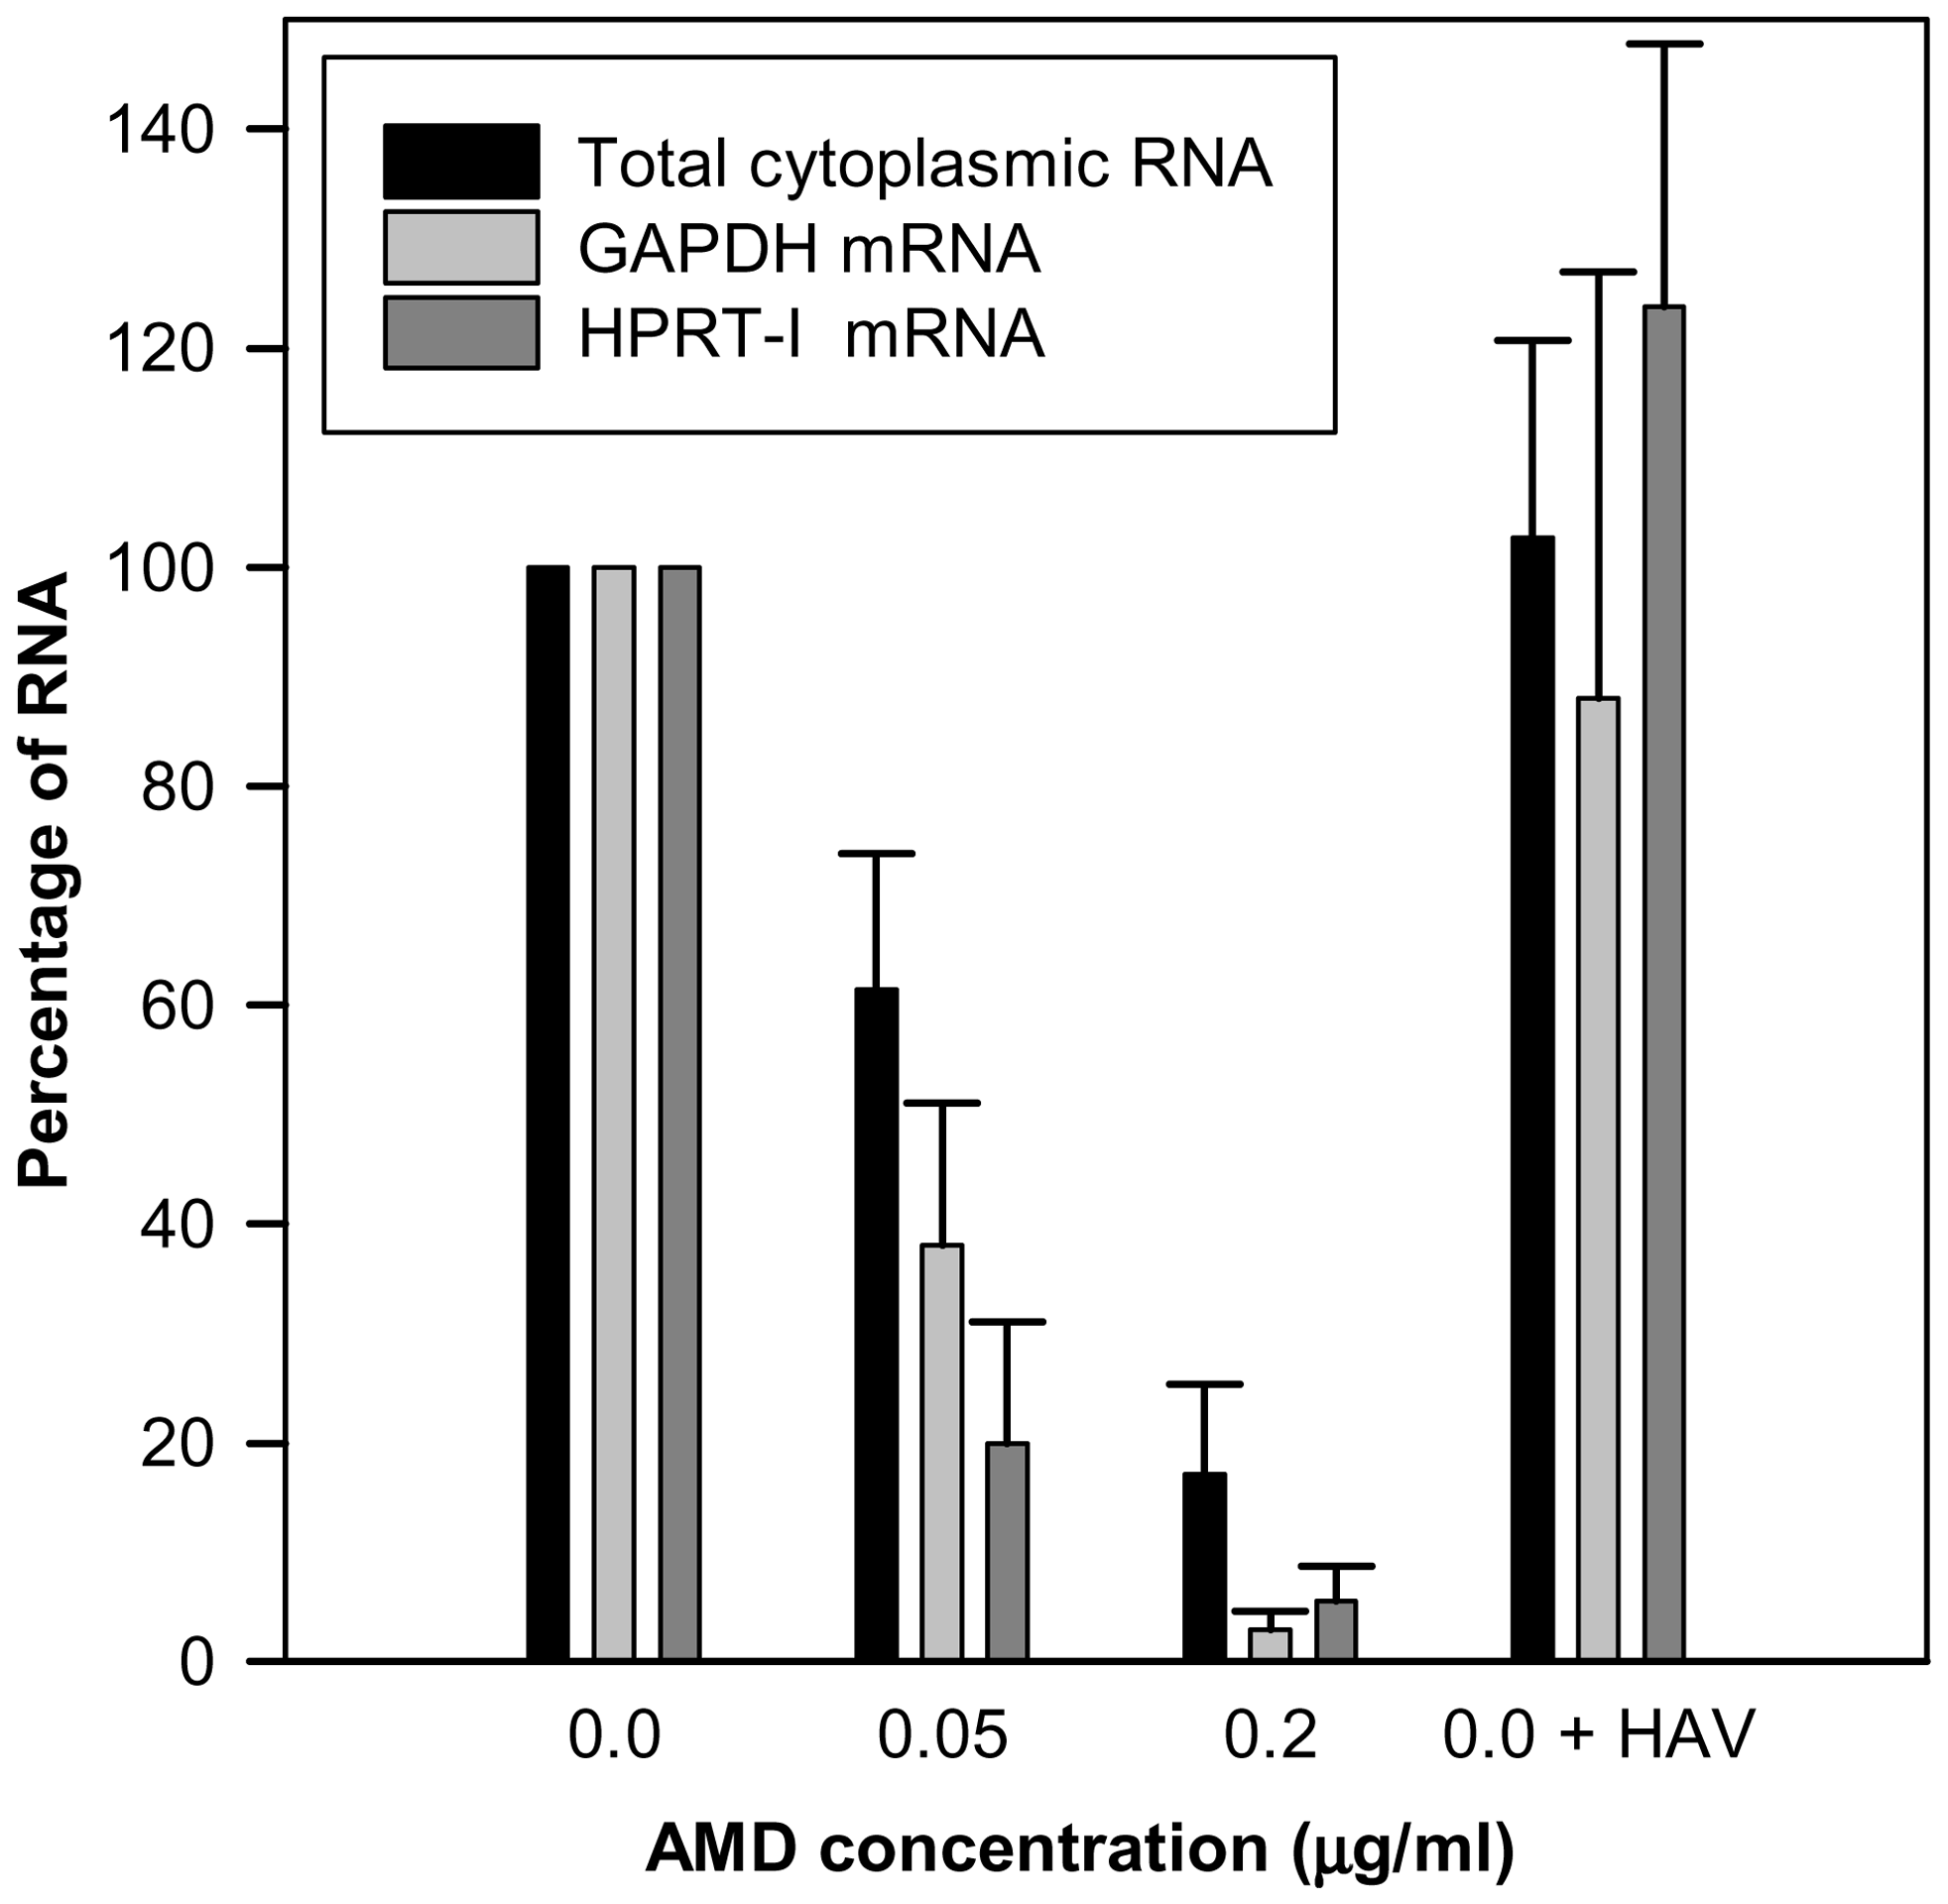 Abundance (percent) of total cytoplasmic RNA and mRNA from two house-keeping genes (GAPDH and HPRT-I) in uninfected FRhK-4 cell monolayers growing in the absence of AMD, in the presence of 0.05 µg/ml and 0.2 µg/ml of AMD, and in HAV-infected cells in the absence of the drug.